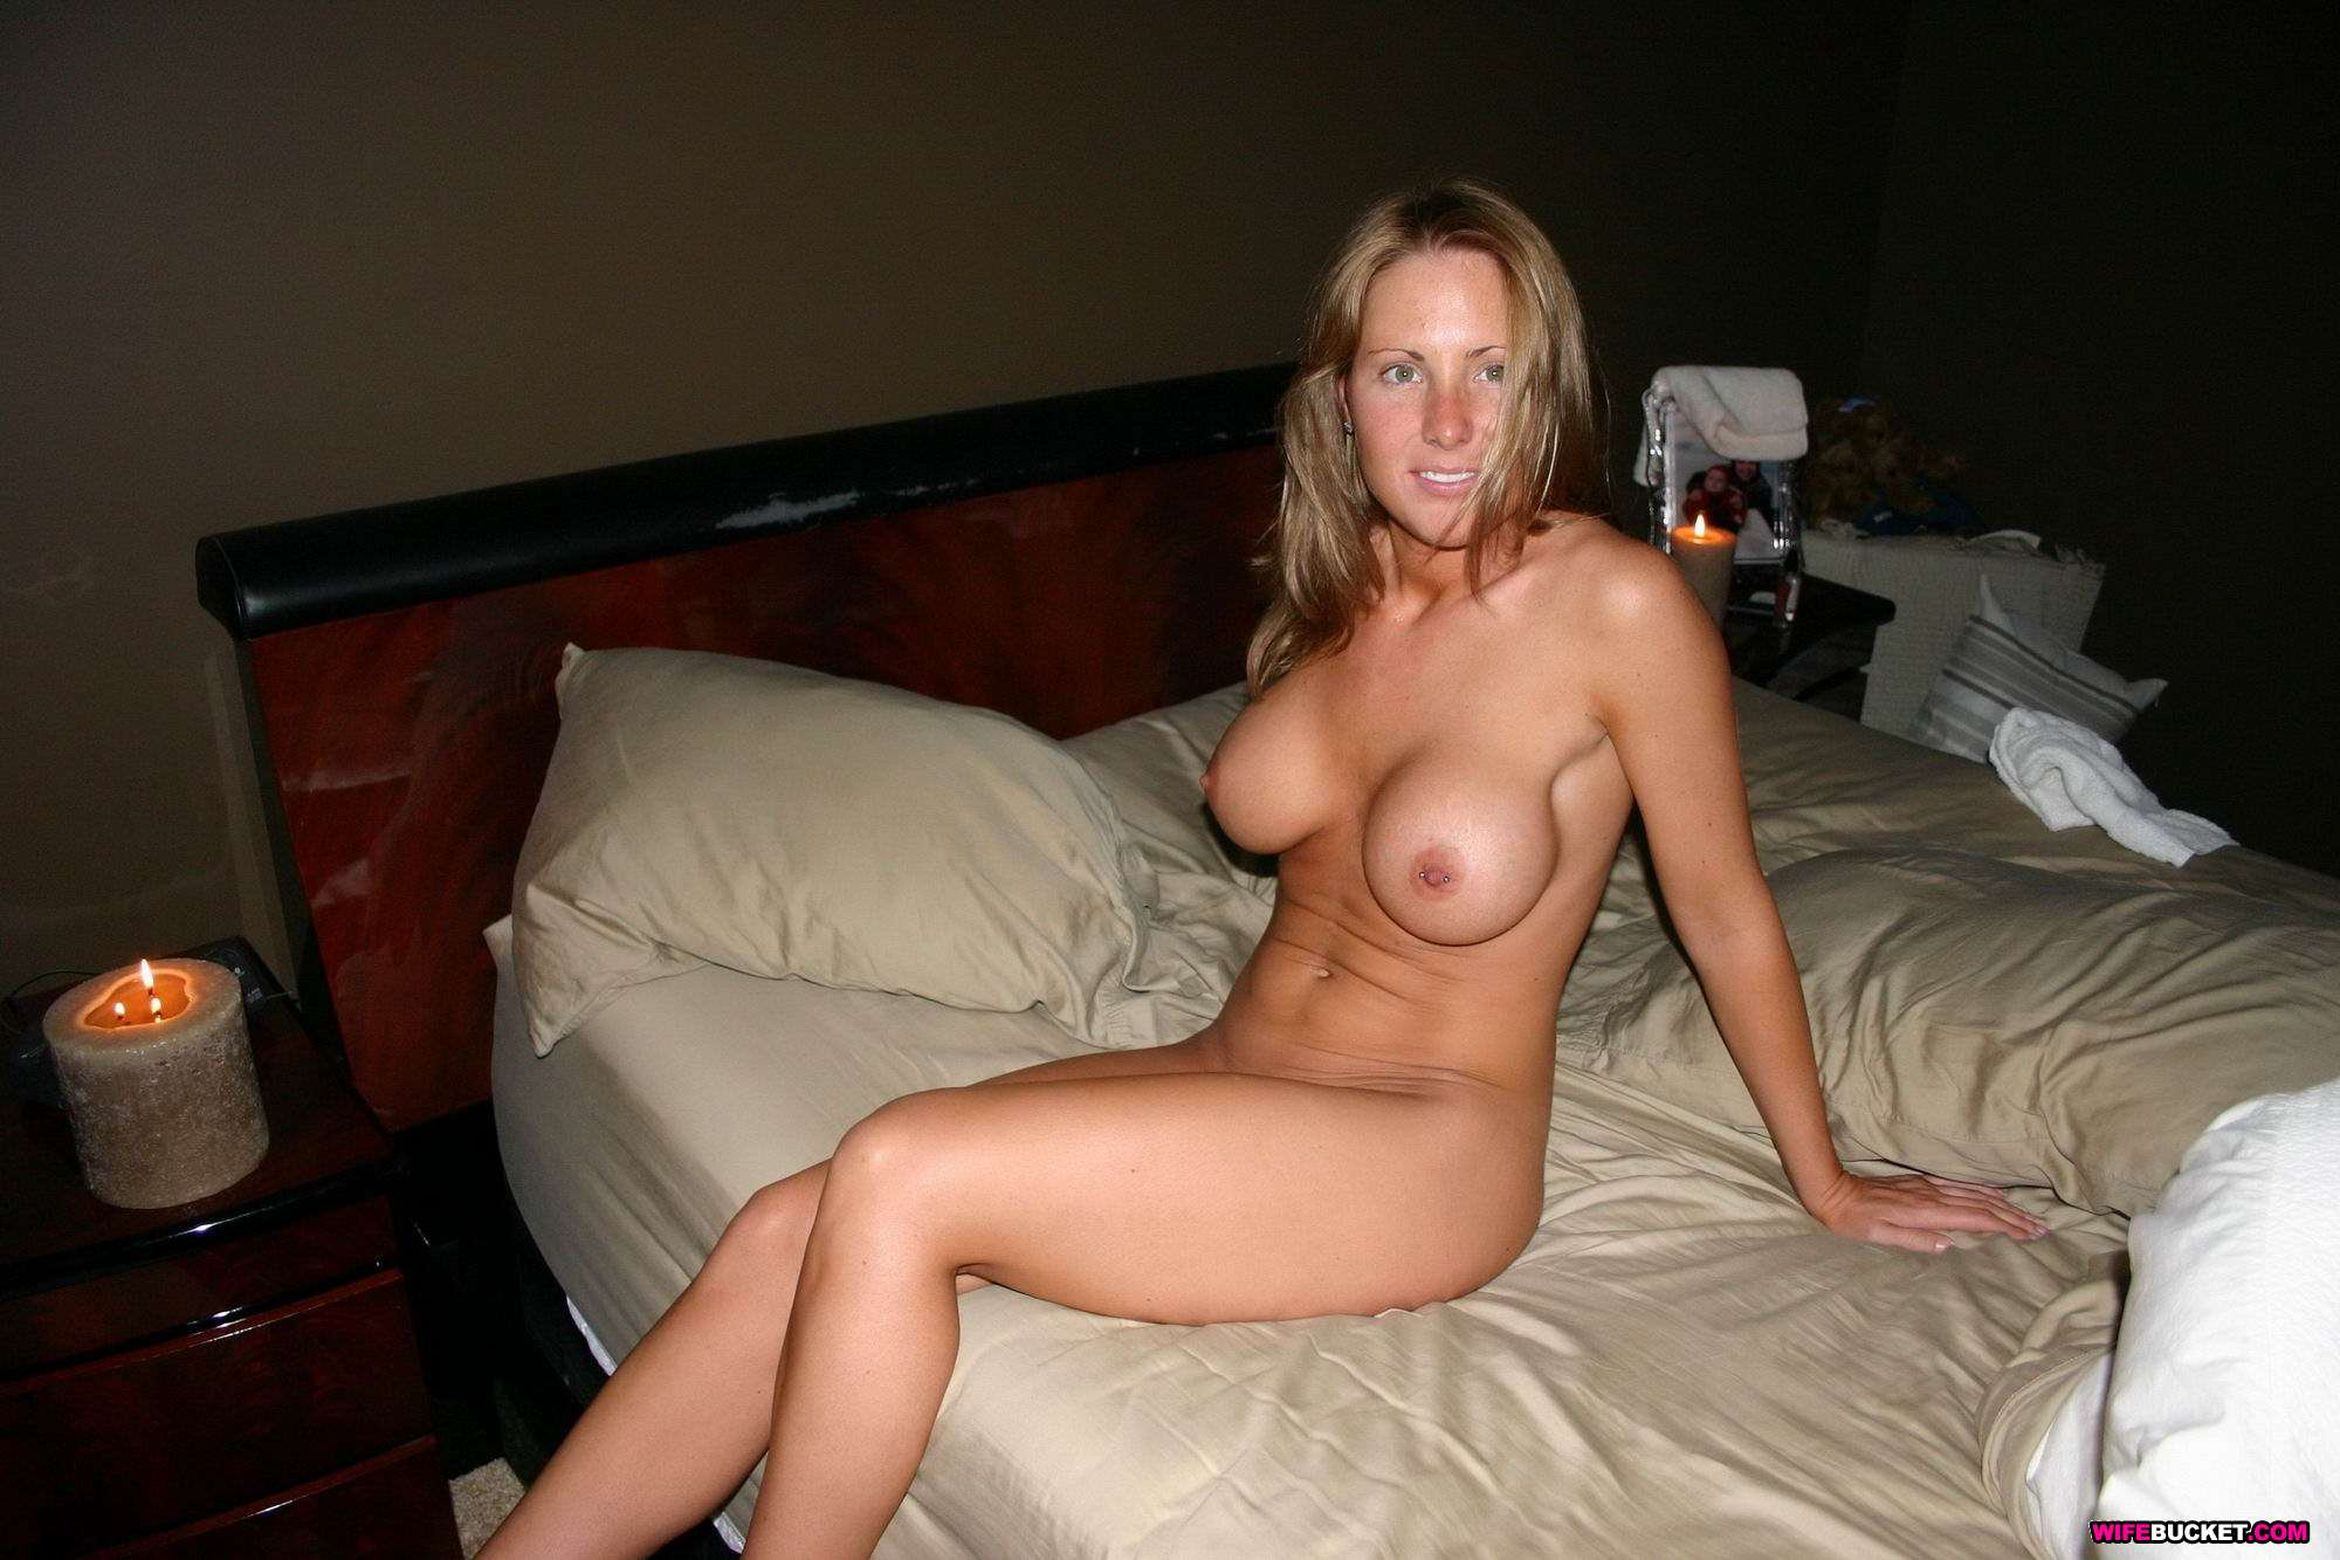 Amateur mature pics - Exclusive mature galleries